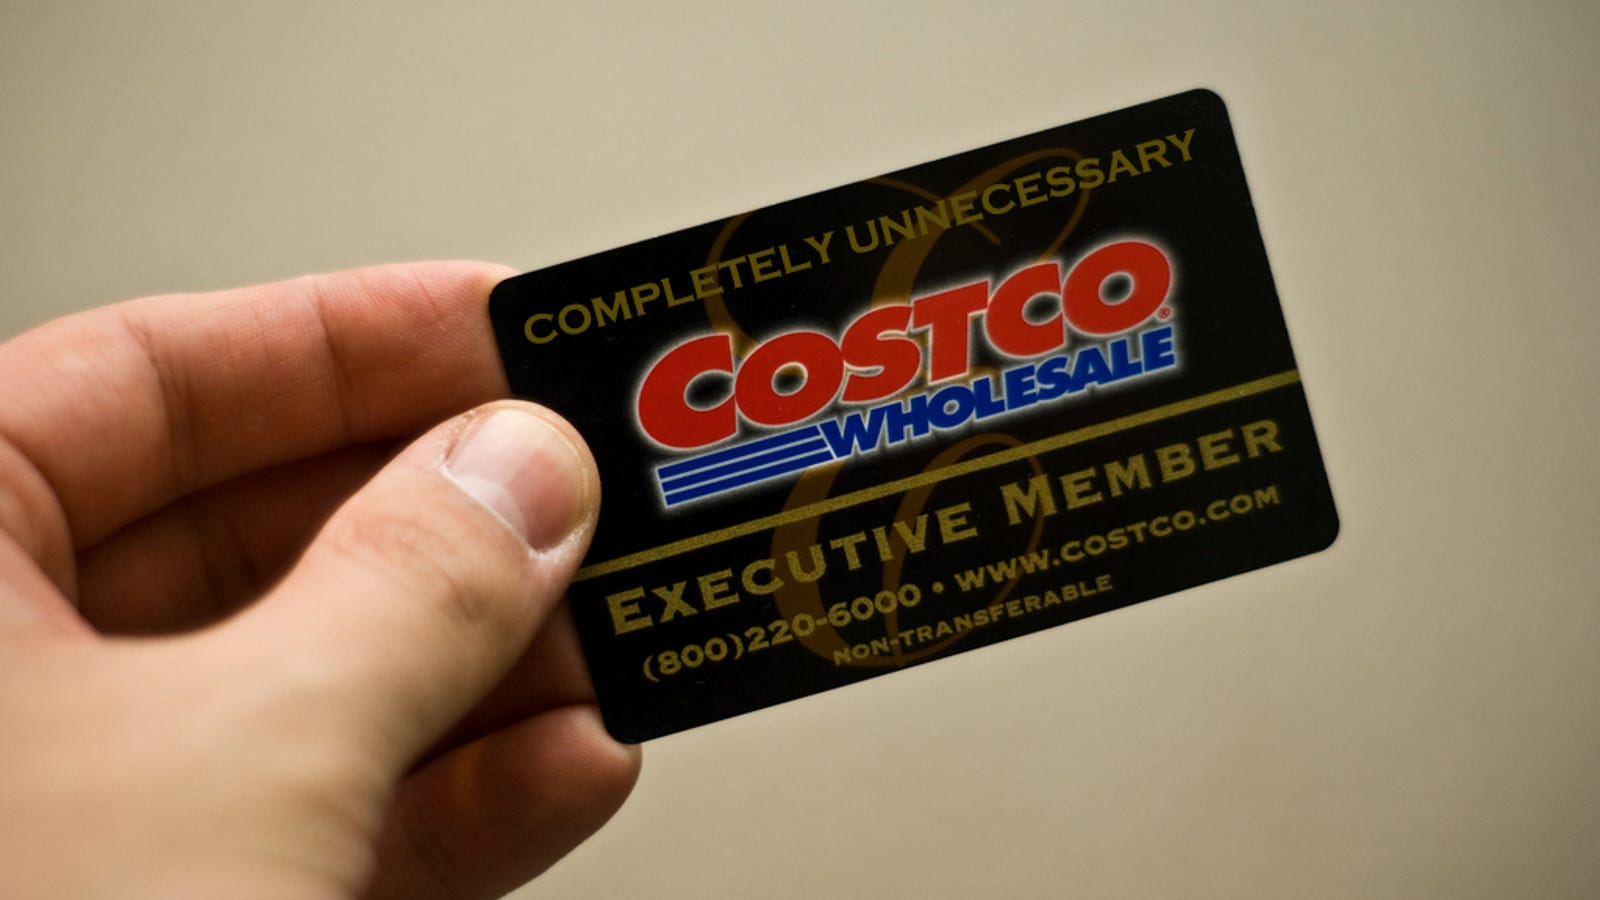 How To Shop At Costco And Sams Club Without A Membership